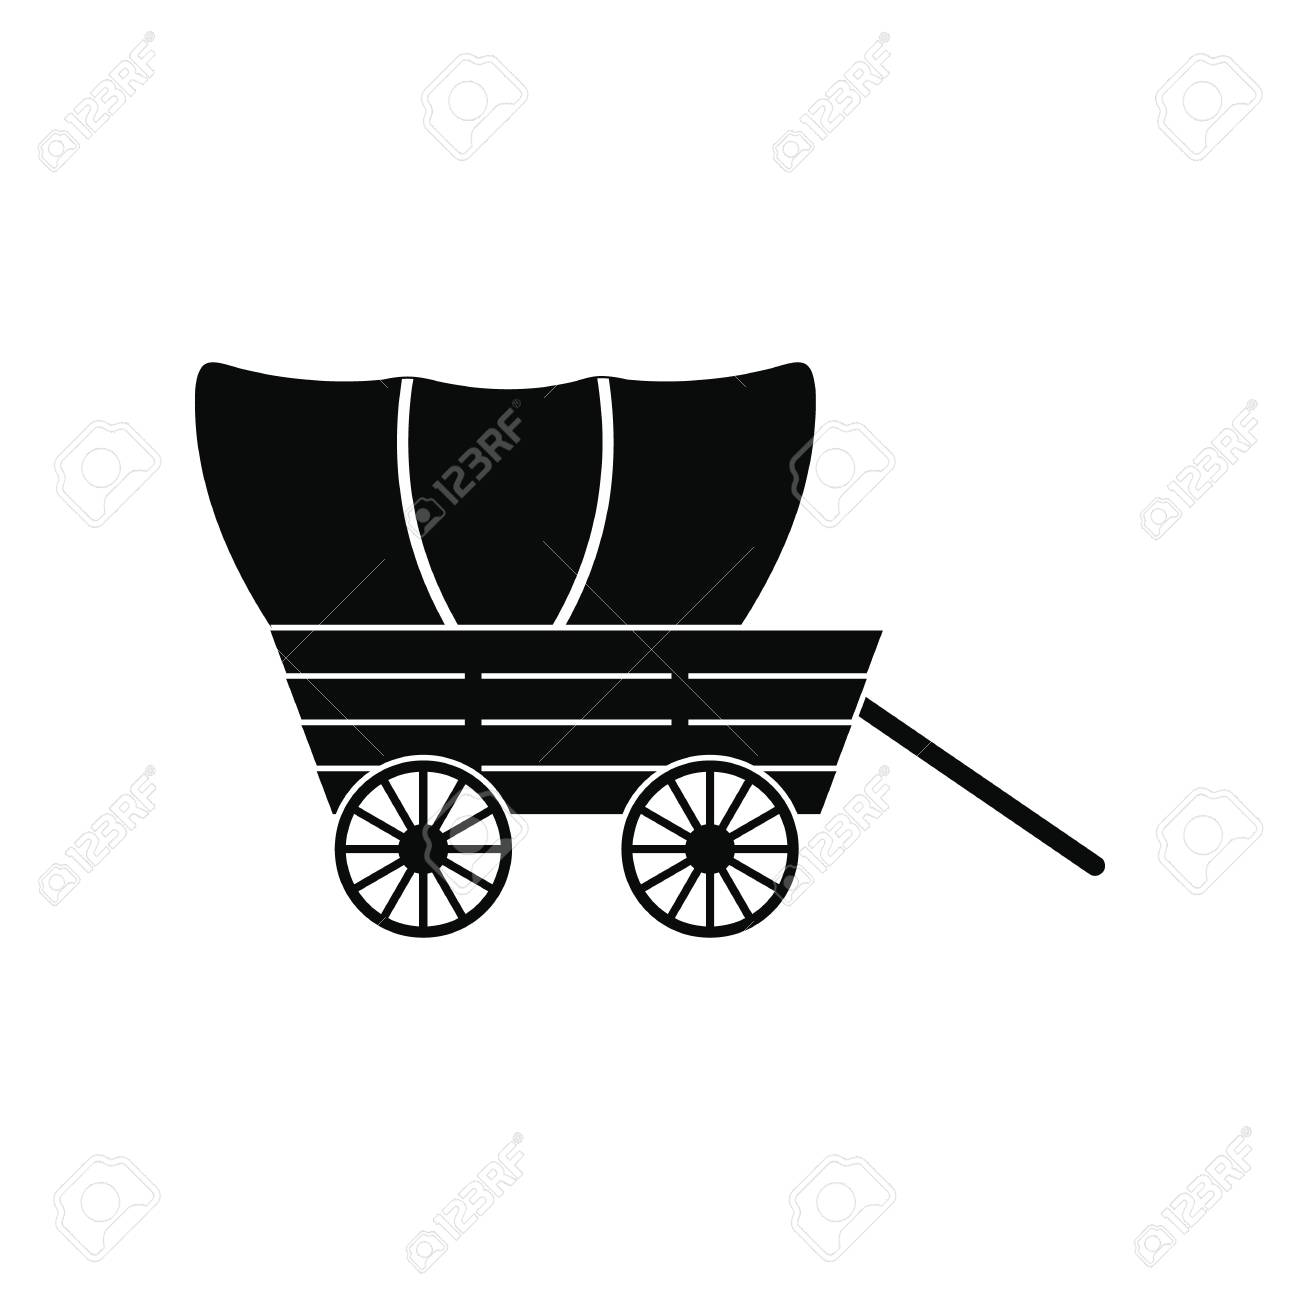 Western Covered Wagon Black Simple Icon Isolated On White Background ...